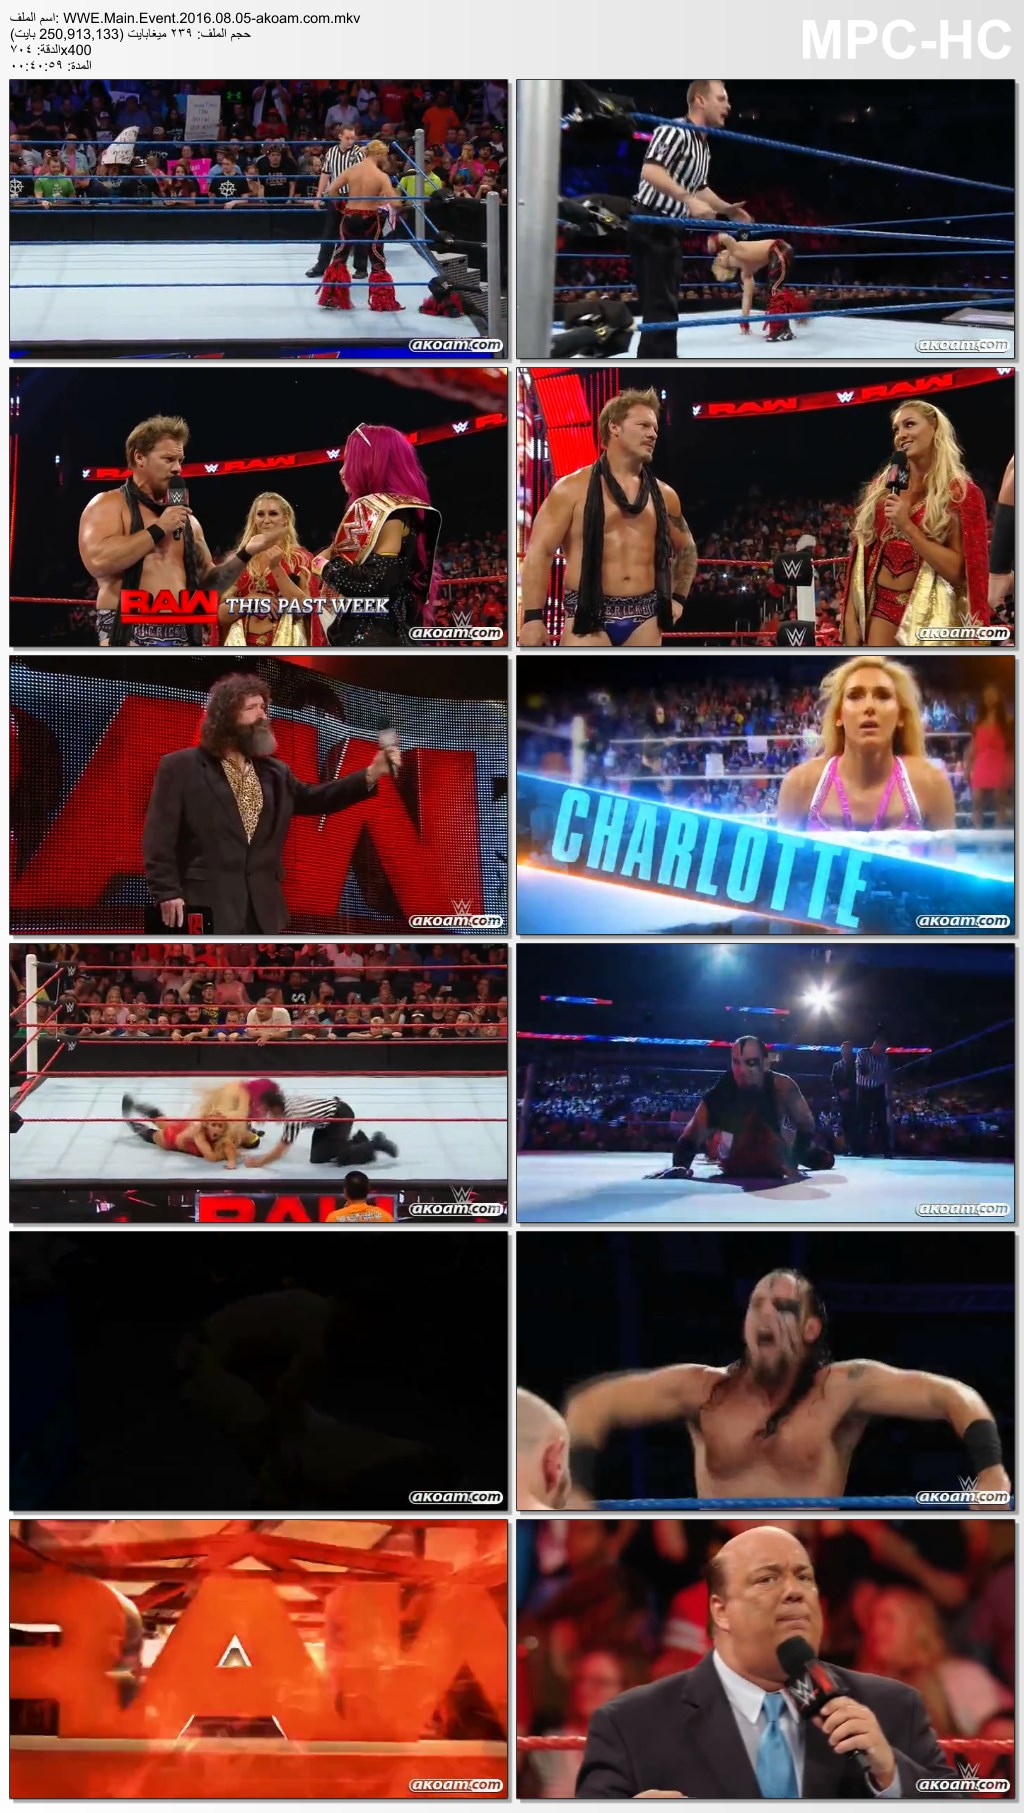 WWE Main Event,WWE,Main Event